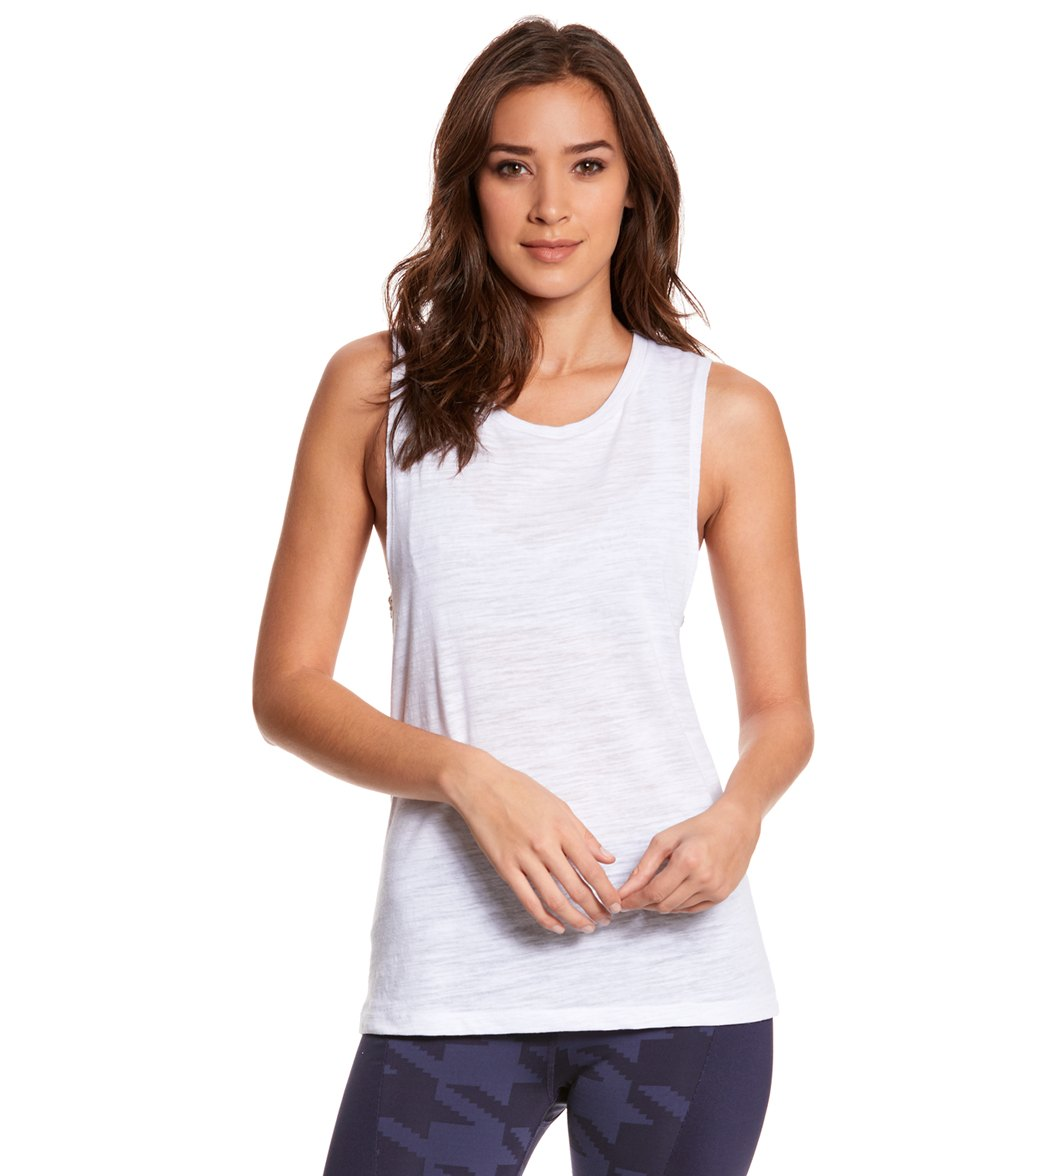 Bella + Canvas Women's Flowy Scoop Workout Muscle T-shirt - White Slub - XX-Large Cotton